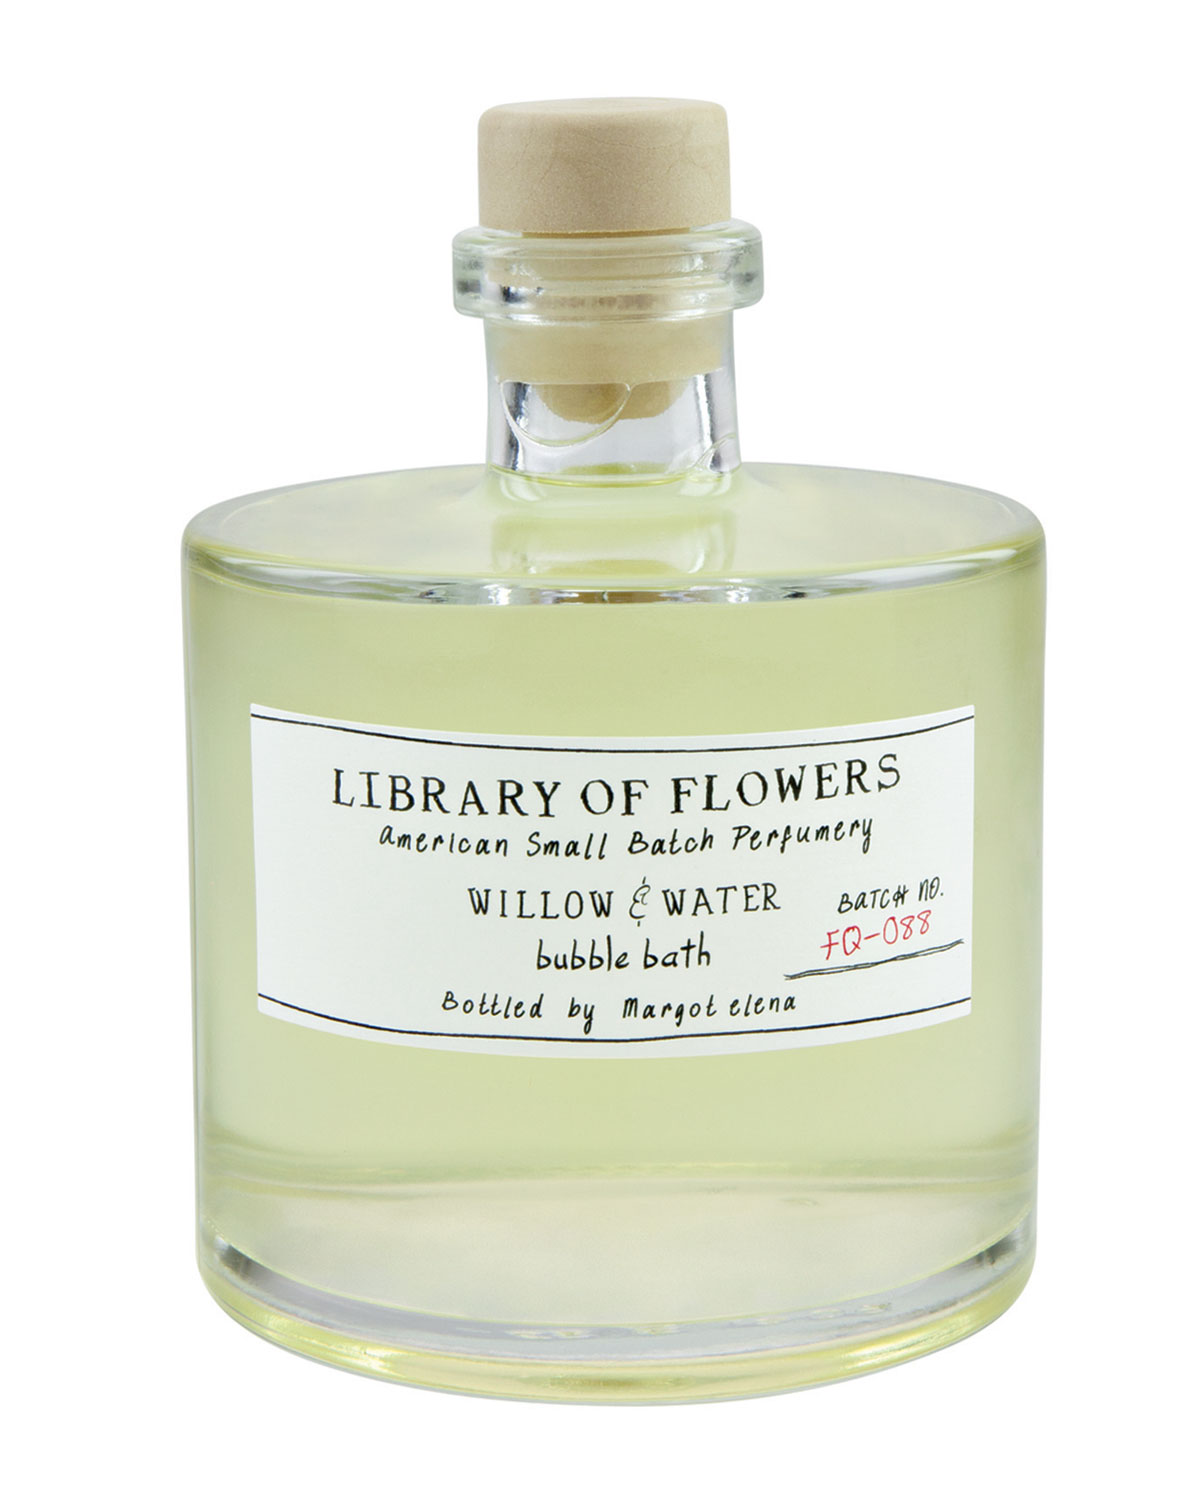 Willow & Water Bubble Bath